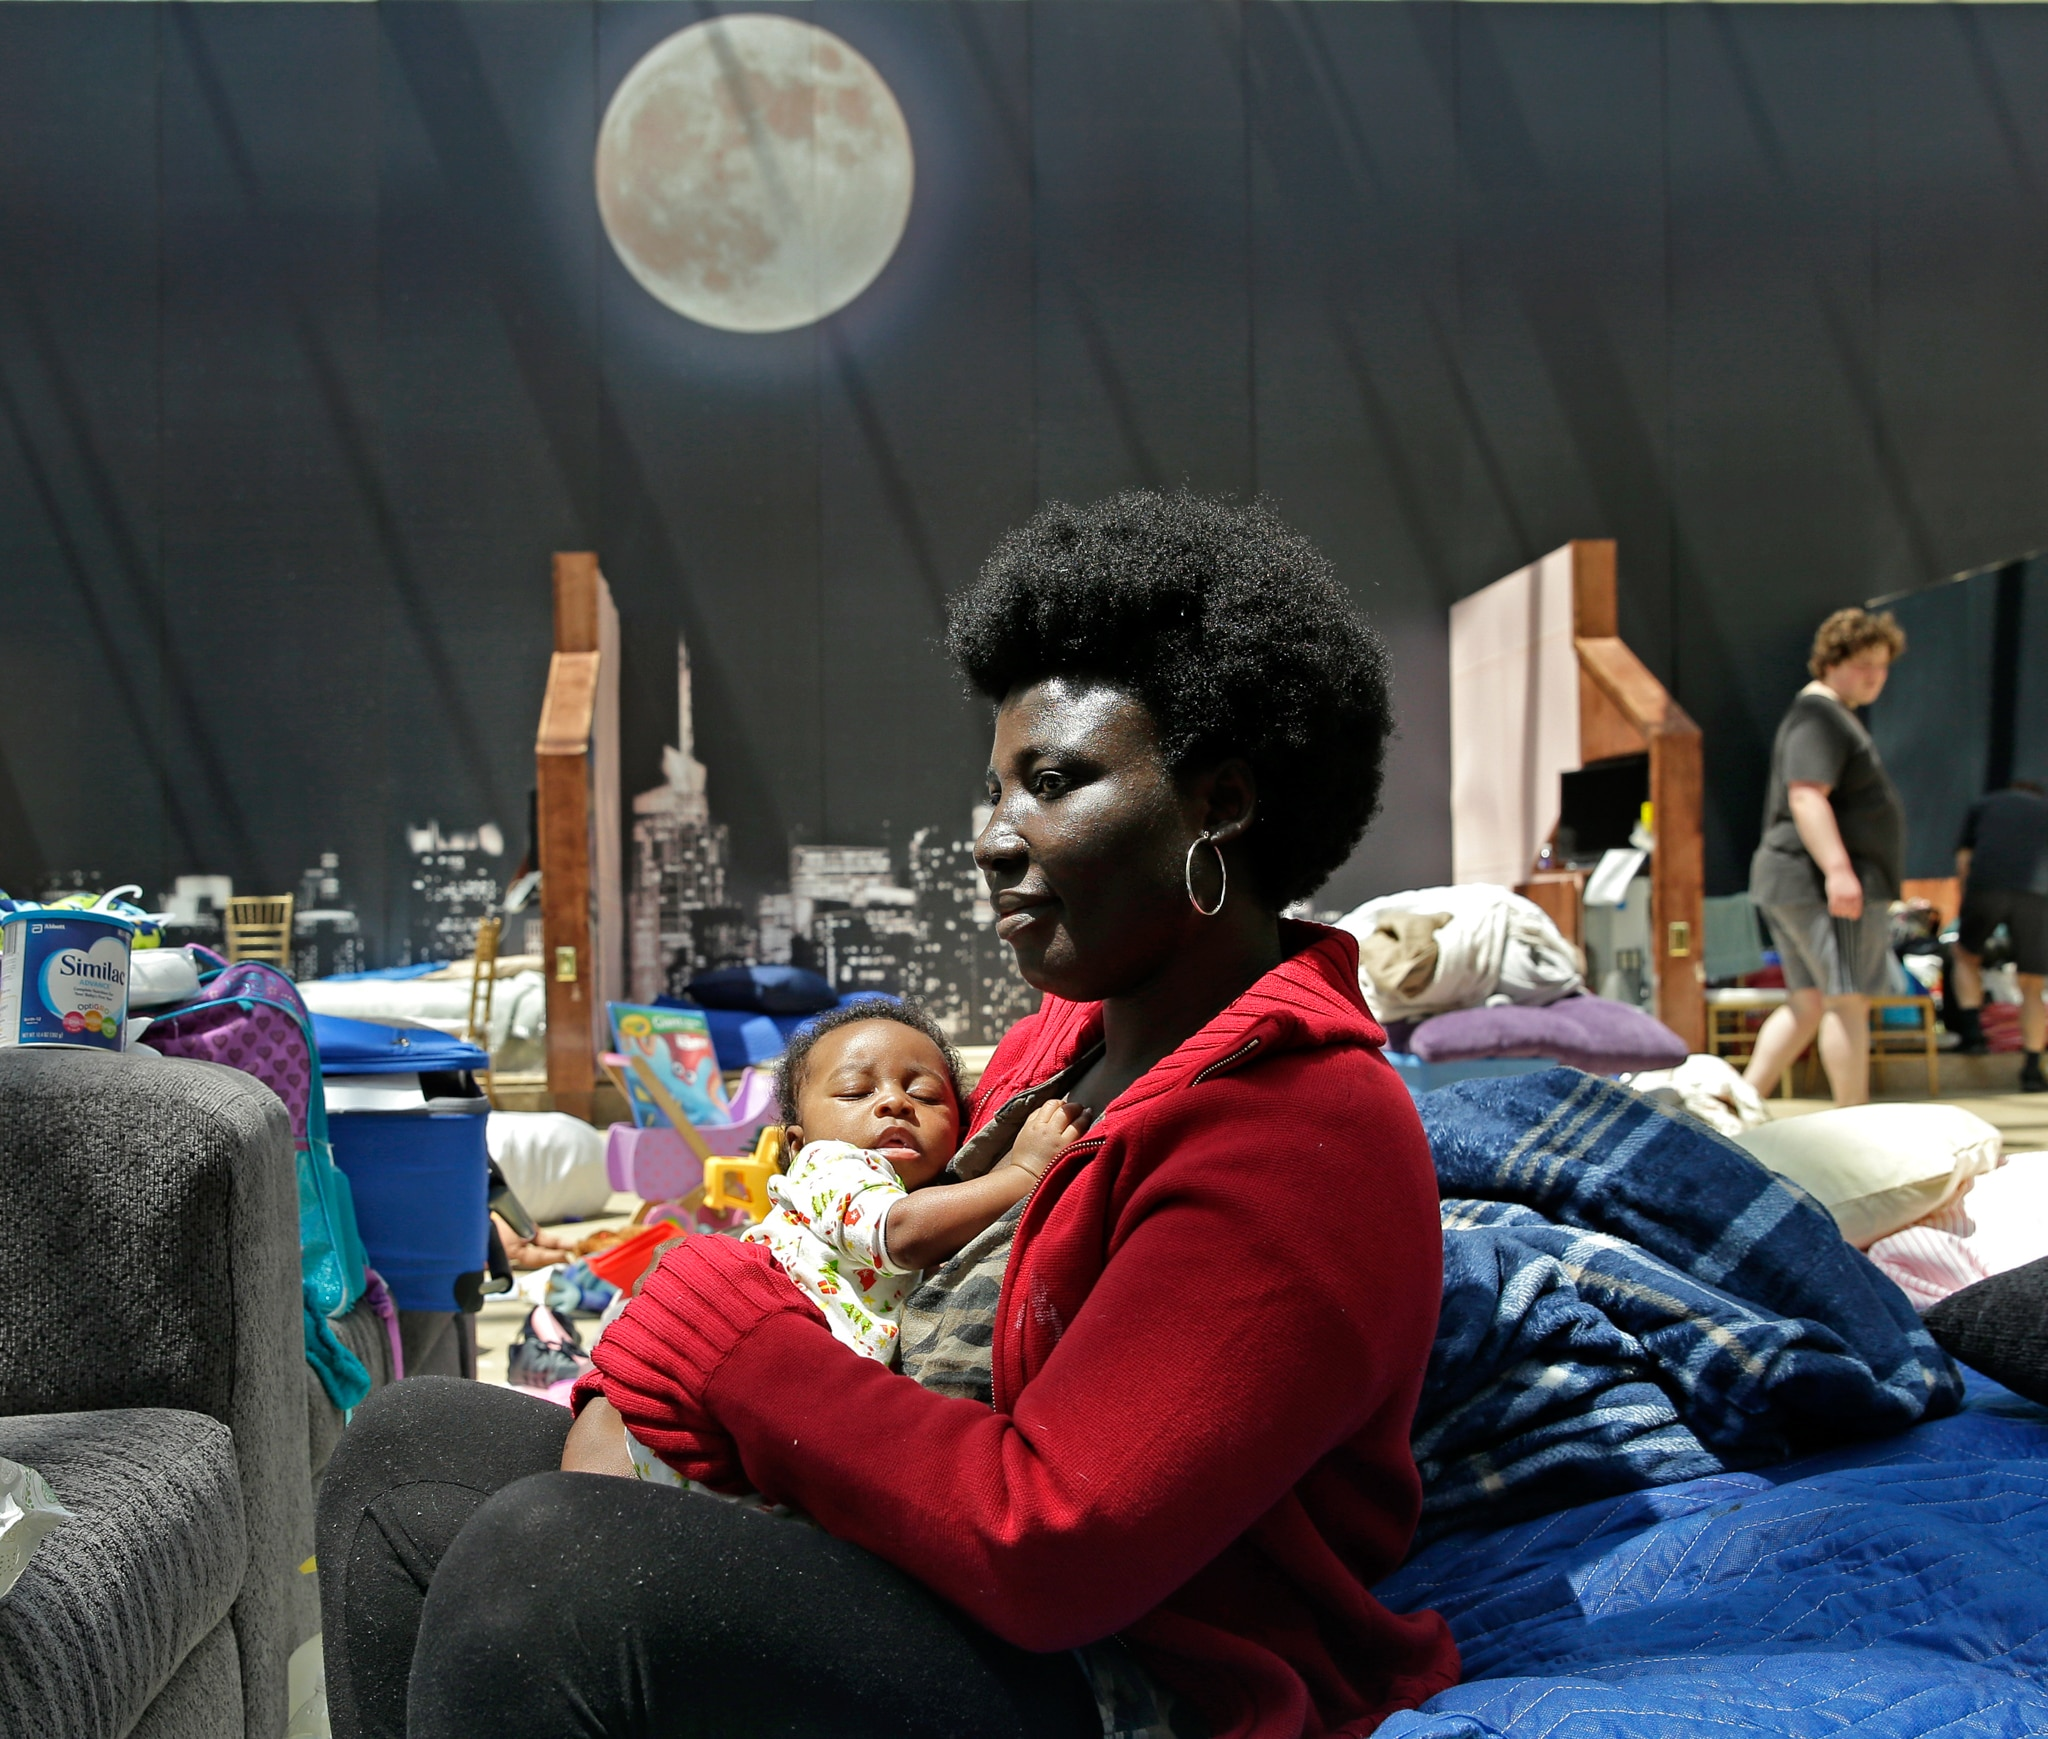 Woman holding baby with moon and cityscape painted on wall behind her (© AP Images)